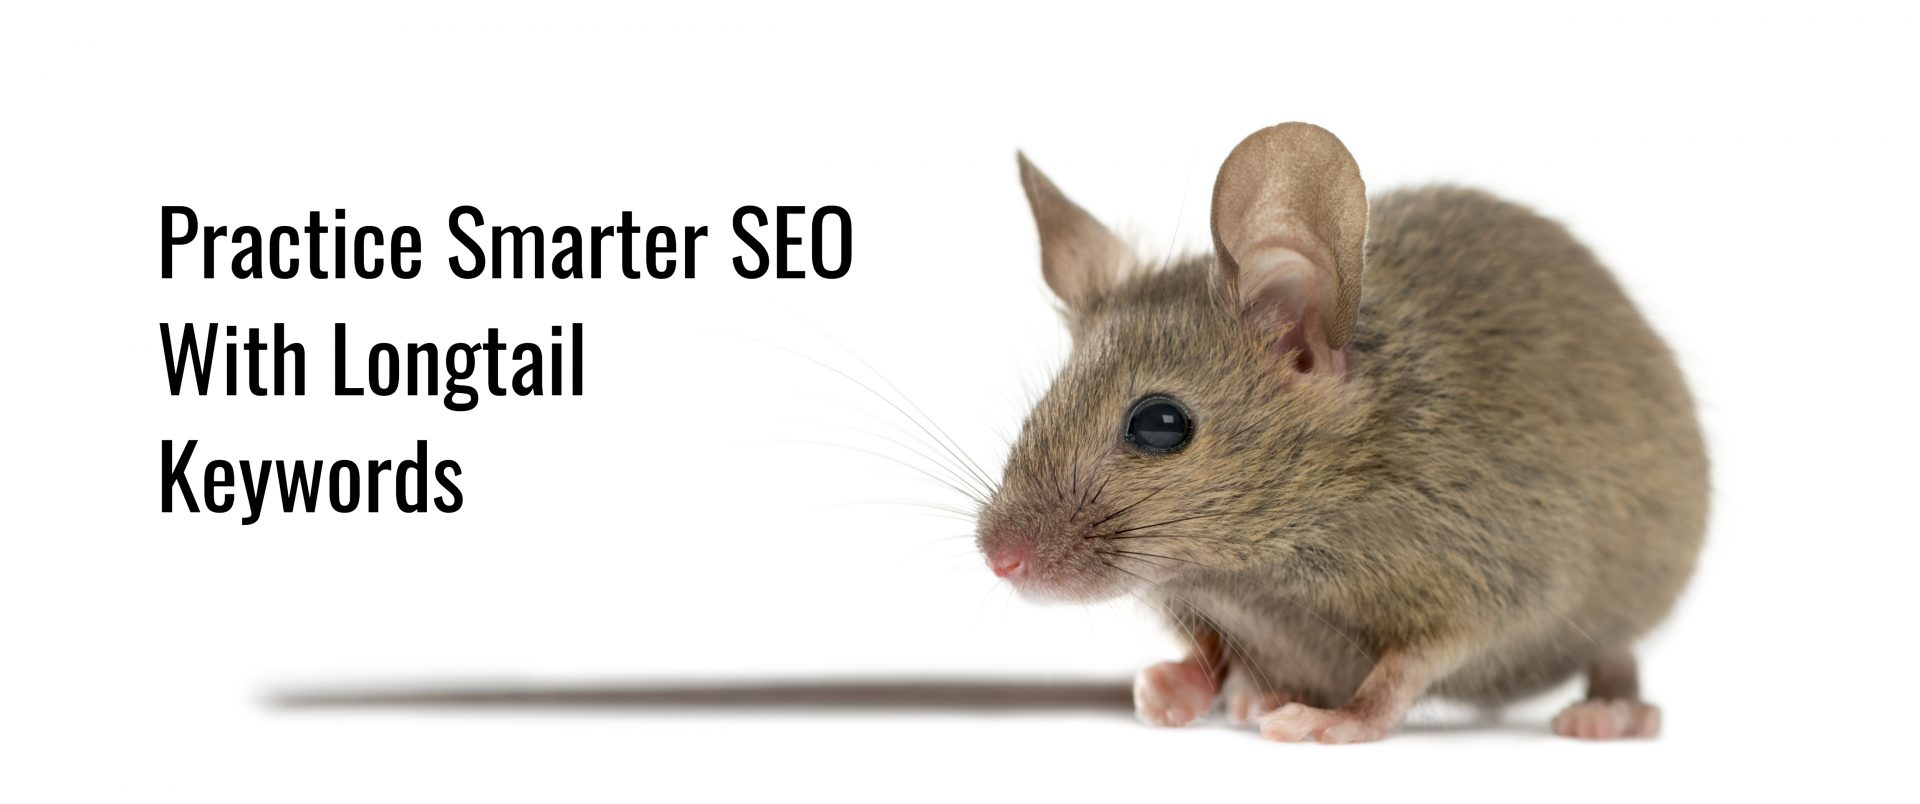 Practice Smarter SEO with Longtail Keywords